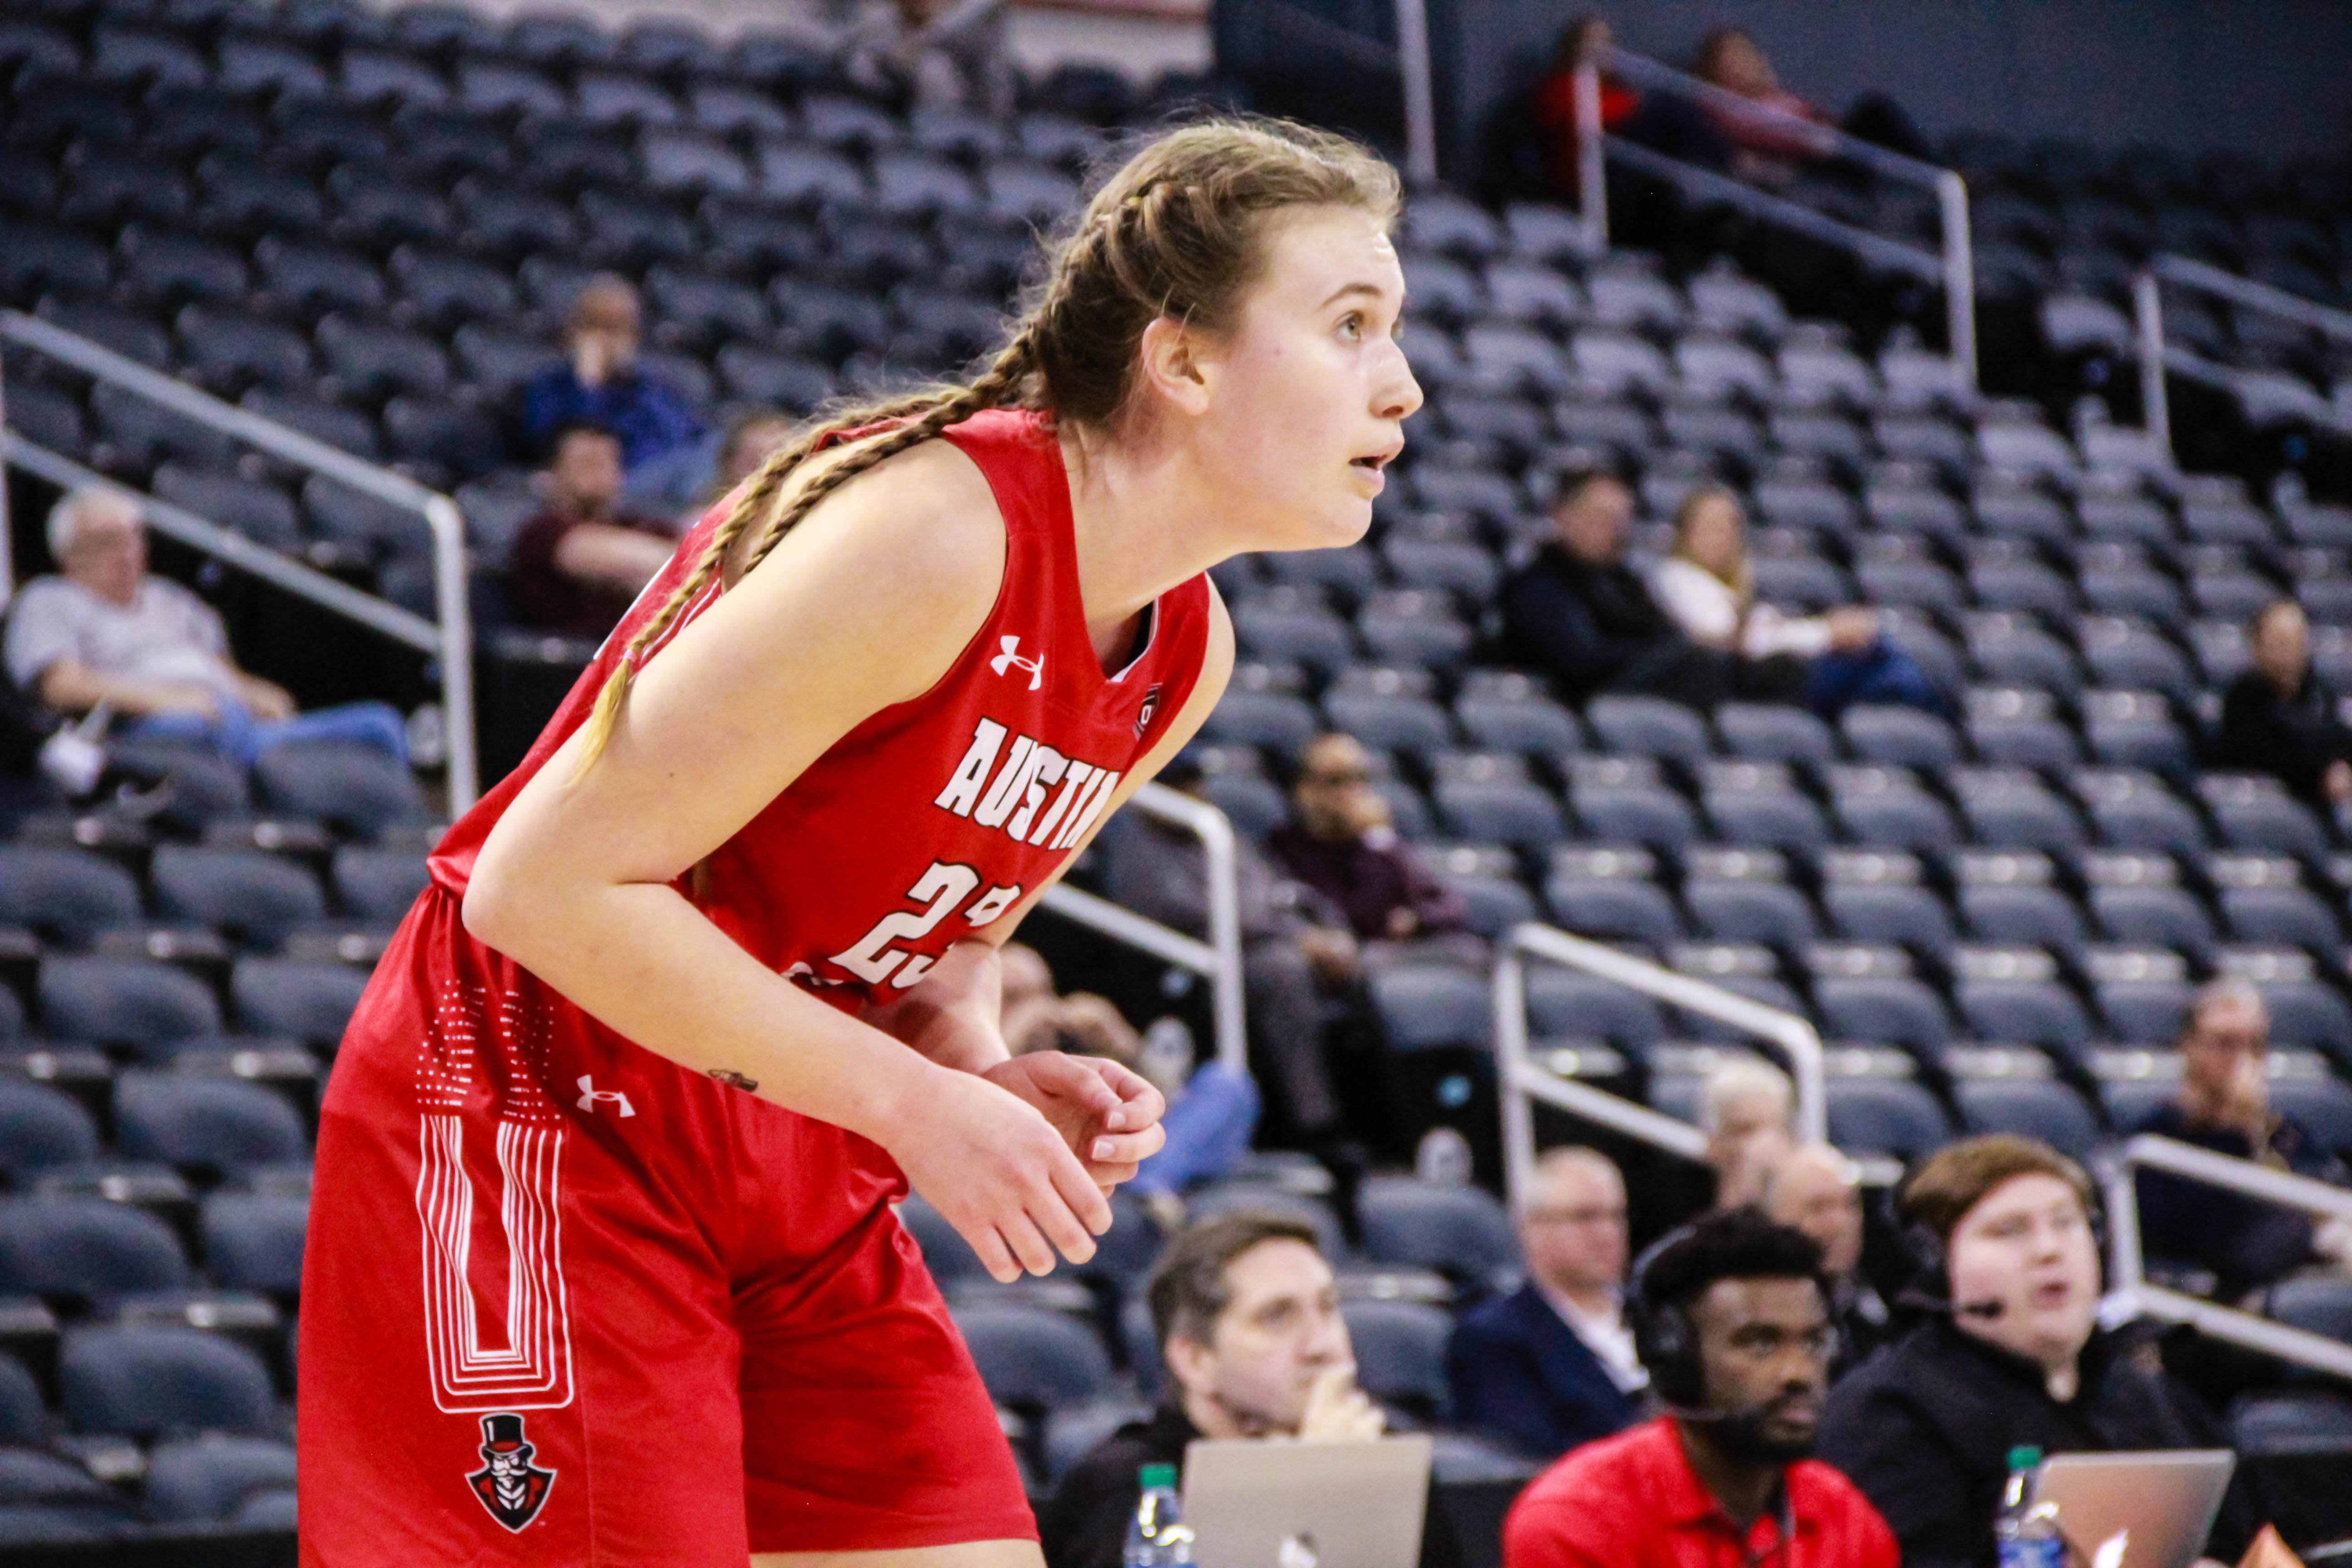 Maggie Knowles scored a game-high 22 points against Trevecca Nazarene in the Governors home opener. MAISIE WILLIAMS | THE ALL STATE